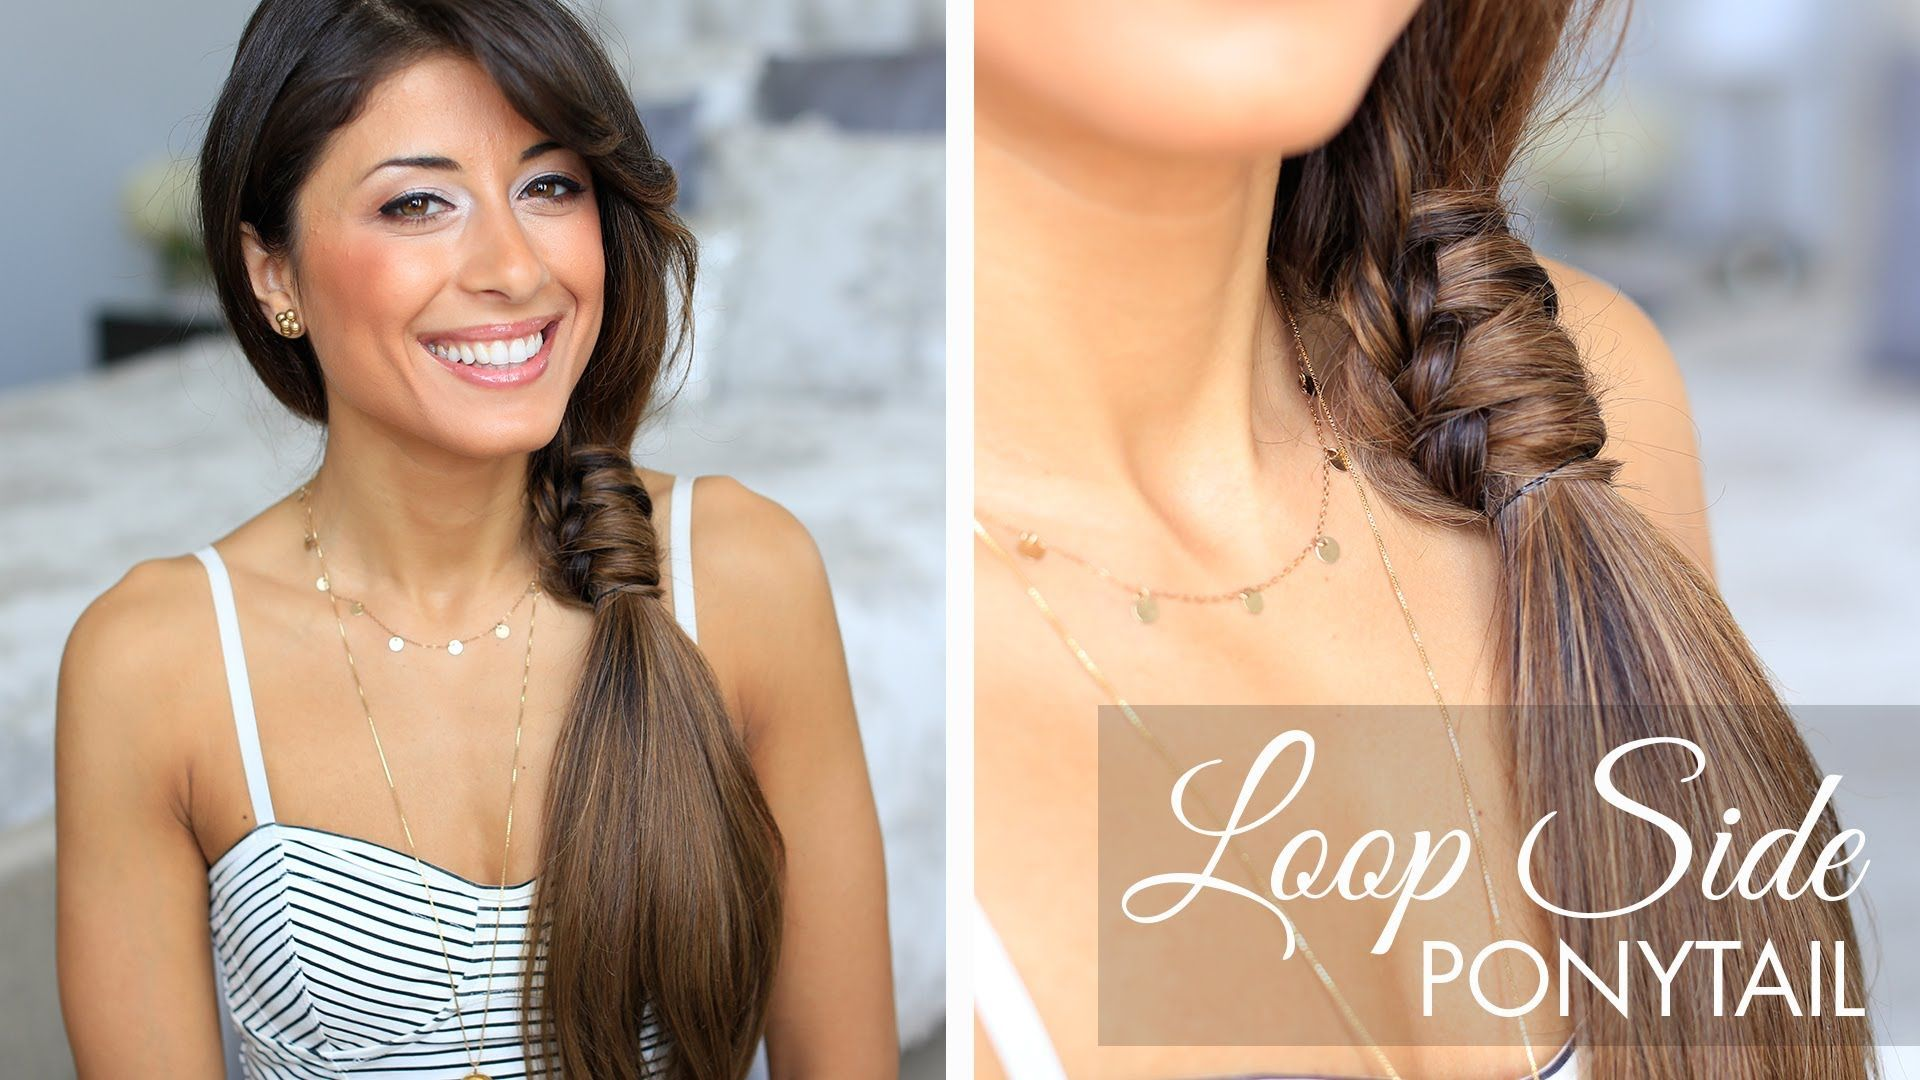 This Loop Side Ponytail Is A Super Cute Hairstyle For Everyday Im